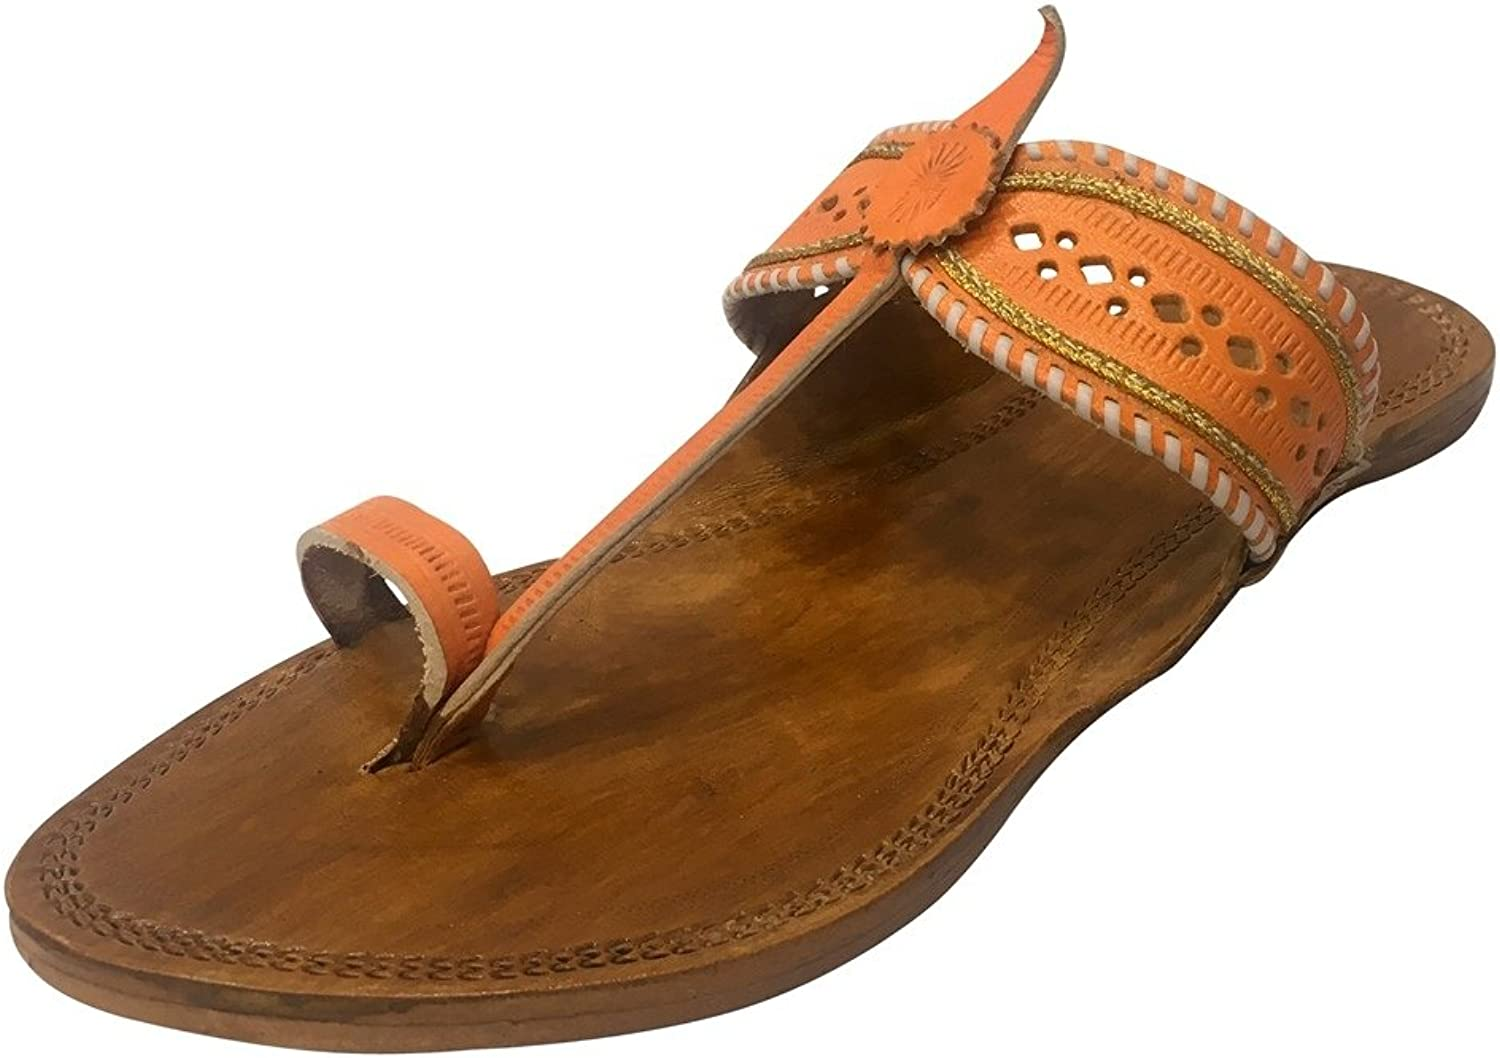 Step n Style Womens Sandals Kolhapuri Slippers Kolhapuri Chappal Kolhapuri Sandals Indian Leather Chappals